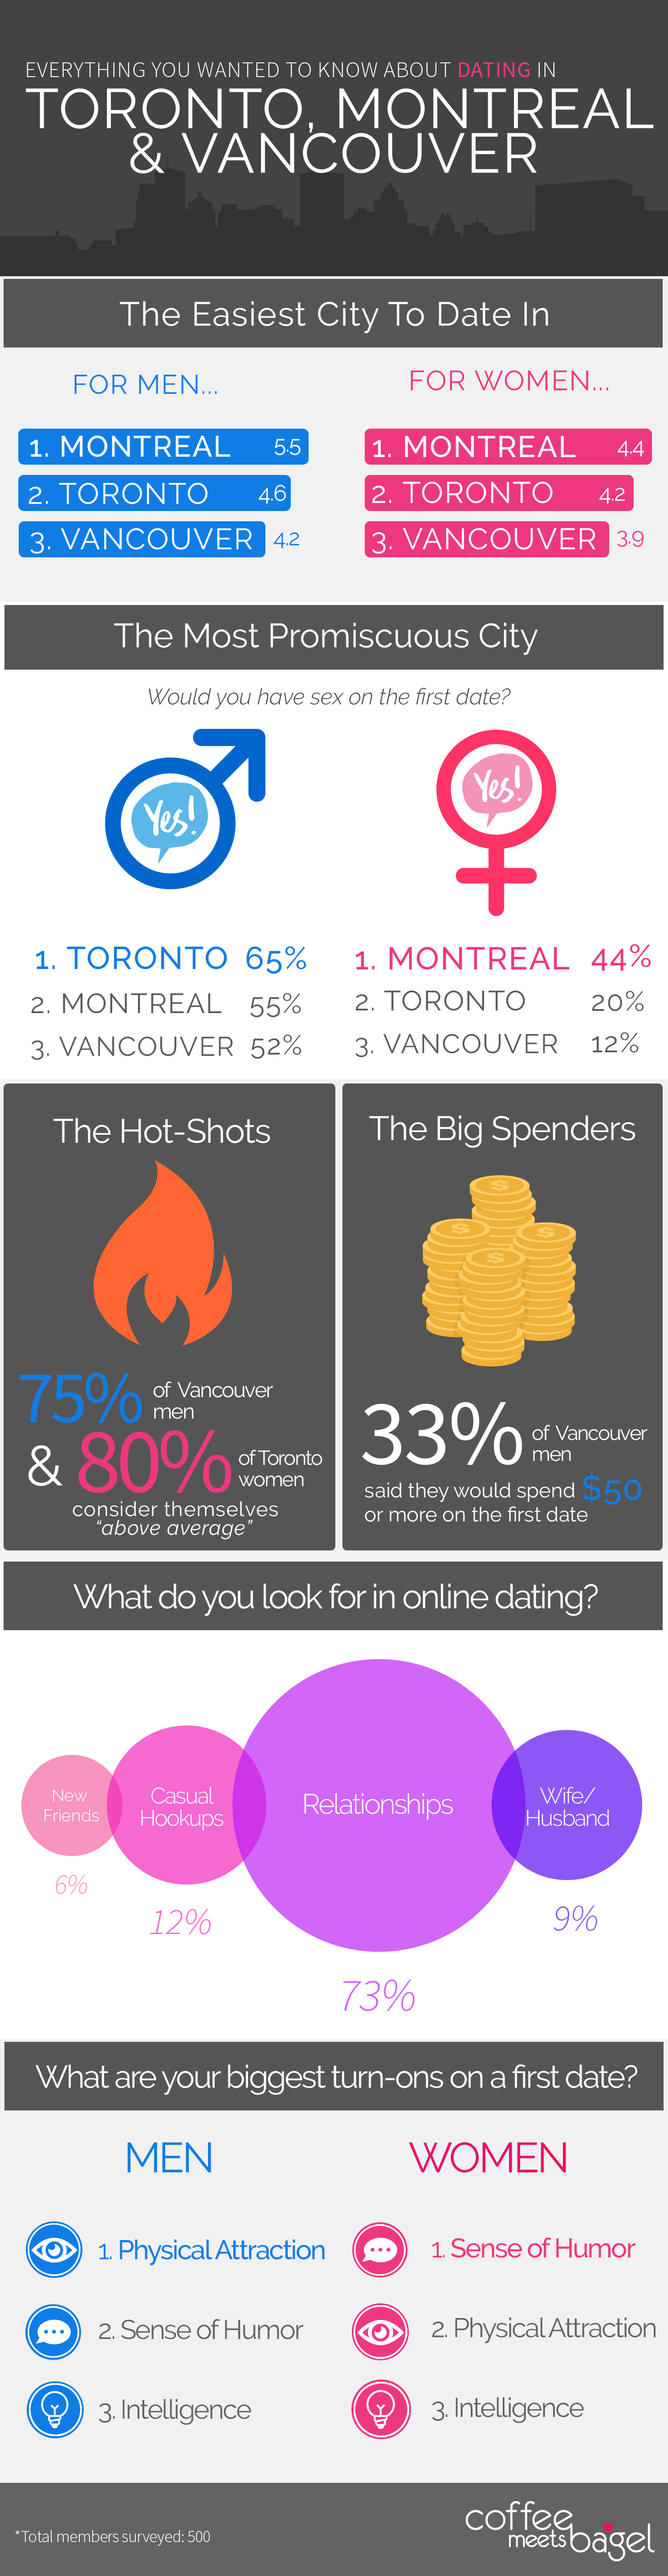 100% free online dating in montreal No register needed - montreals, 100% free chat dating in canada-montreal, no setup, no download, no payments, no credit cards @-wwwchatszobacom also you can meet up strangers from montreal-canada and speak in private livechat rooms.